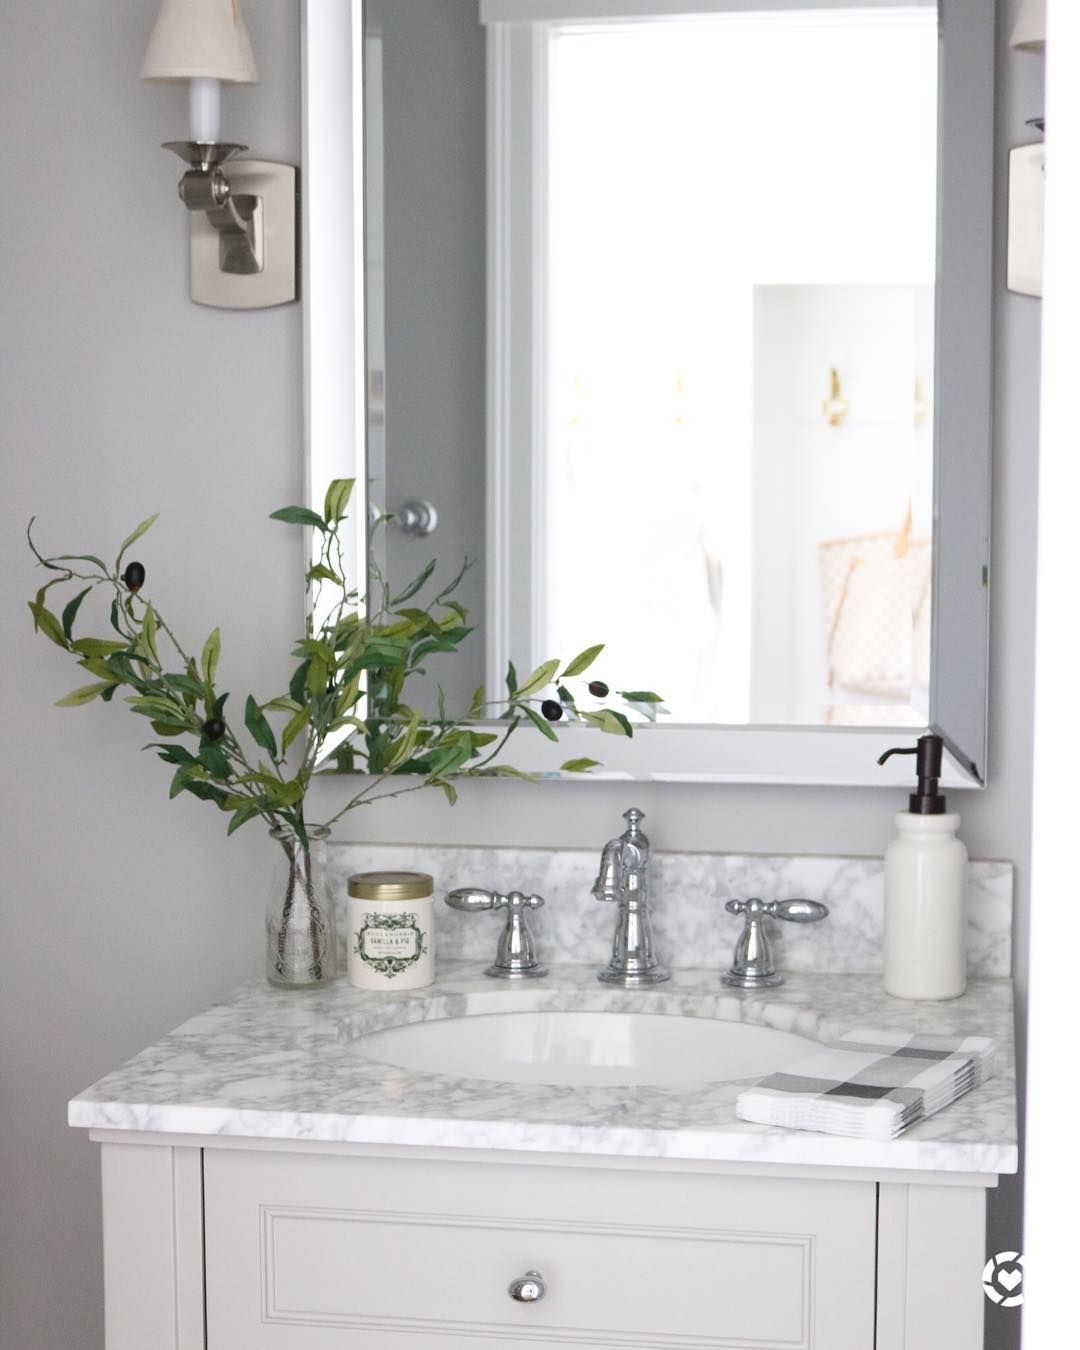 Marble bathroom vanity top with silver faucet